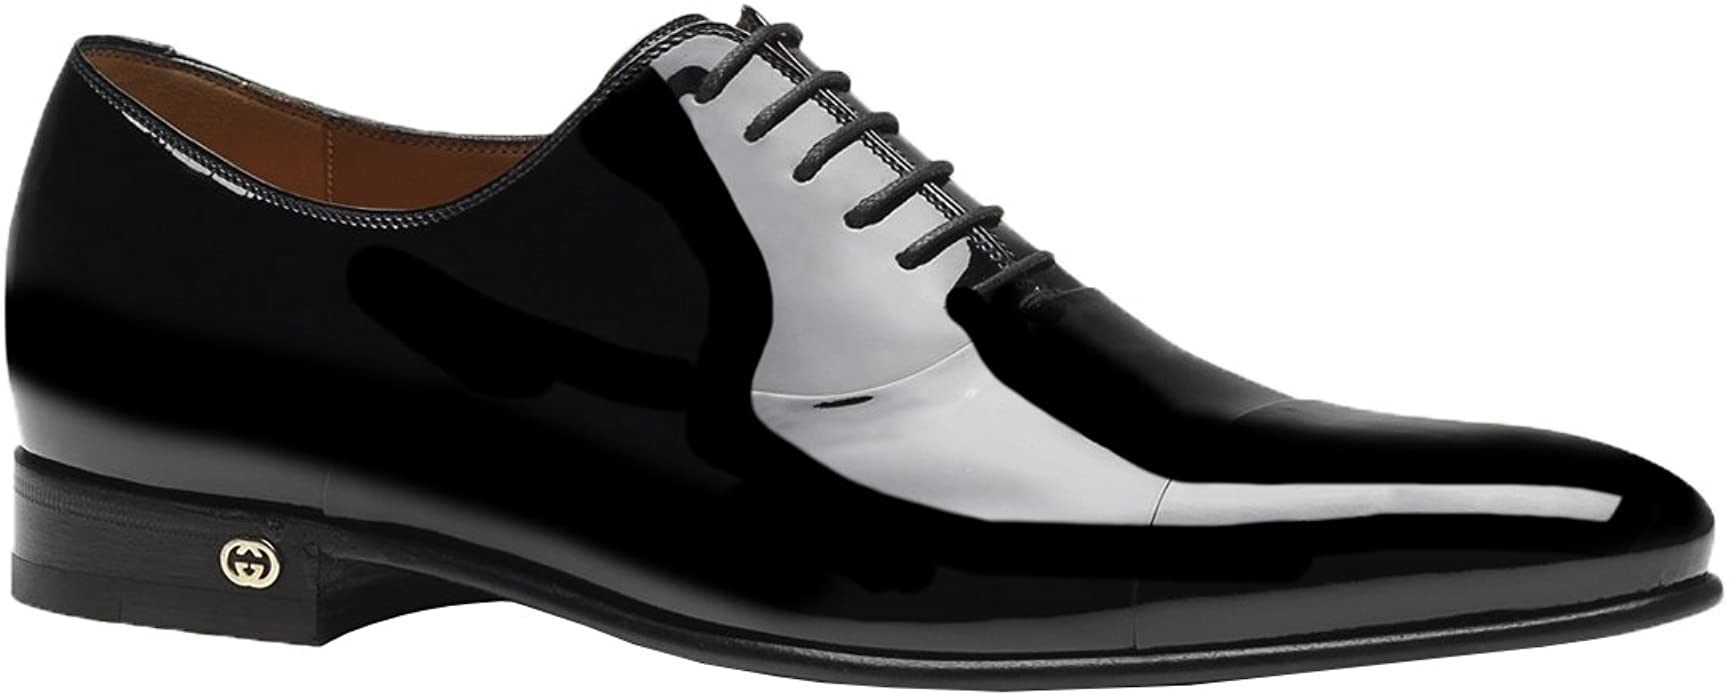 Patent Leather Lace Up Tuxedo Shoes